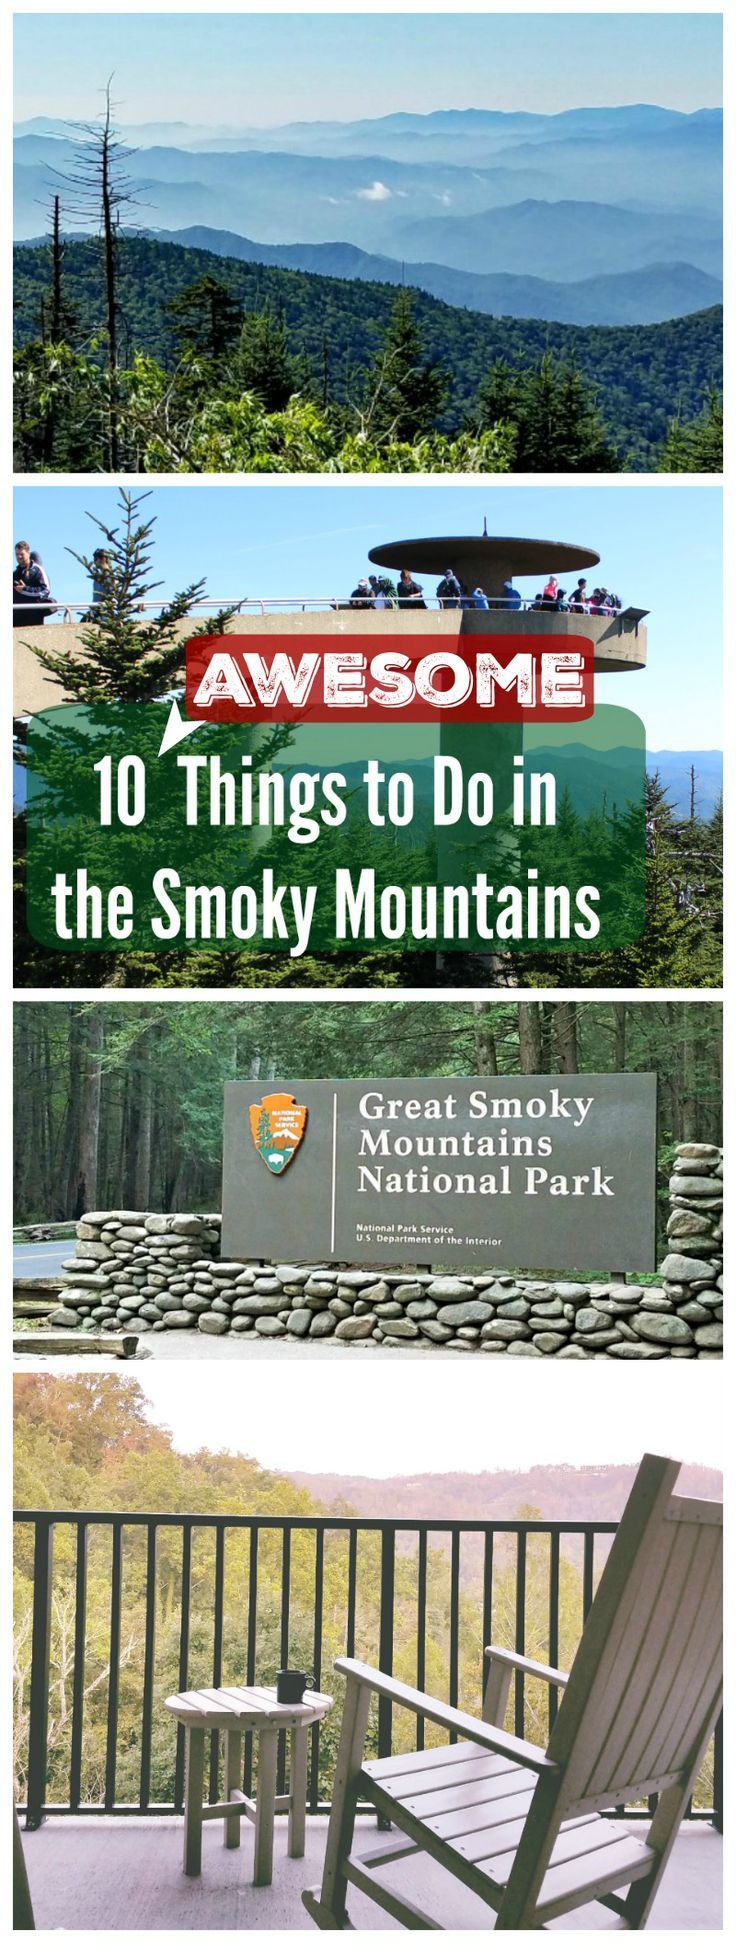 10 Things to Do in Great Smoky Mountains National Park & Gatlinburg, TN